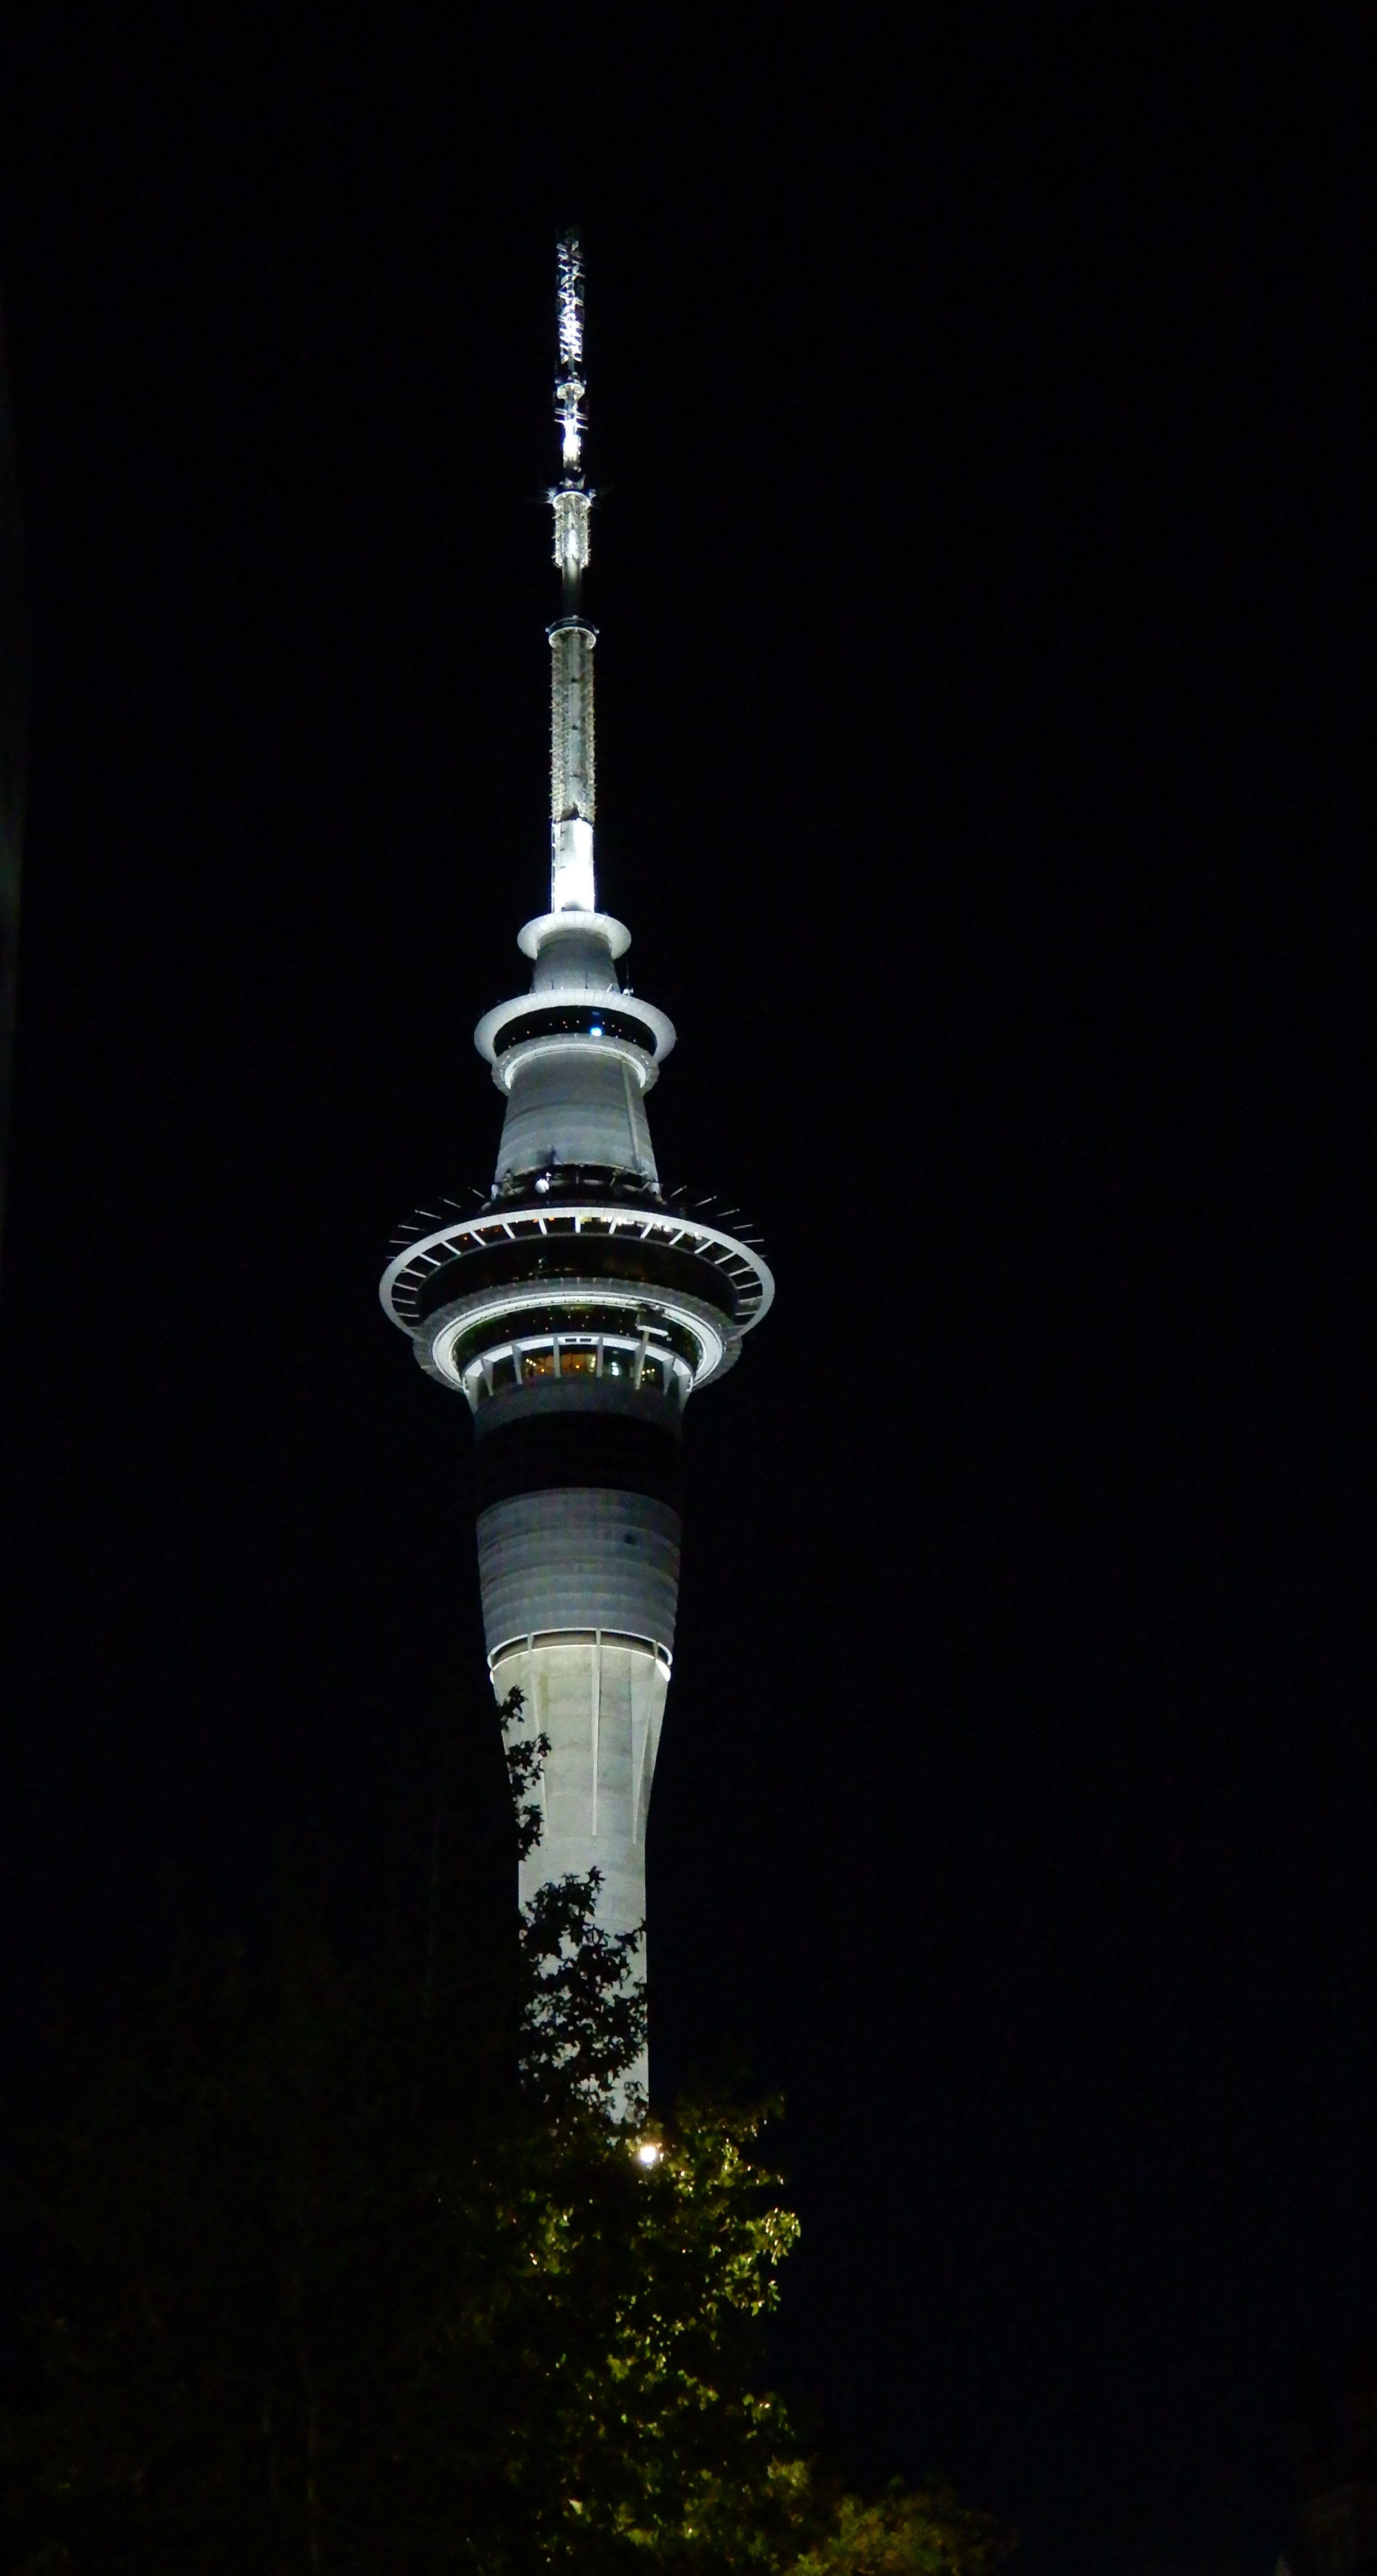 12.Sky Tower at night